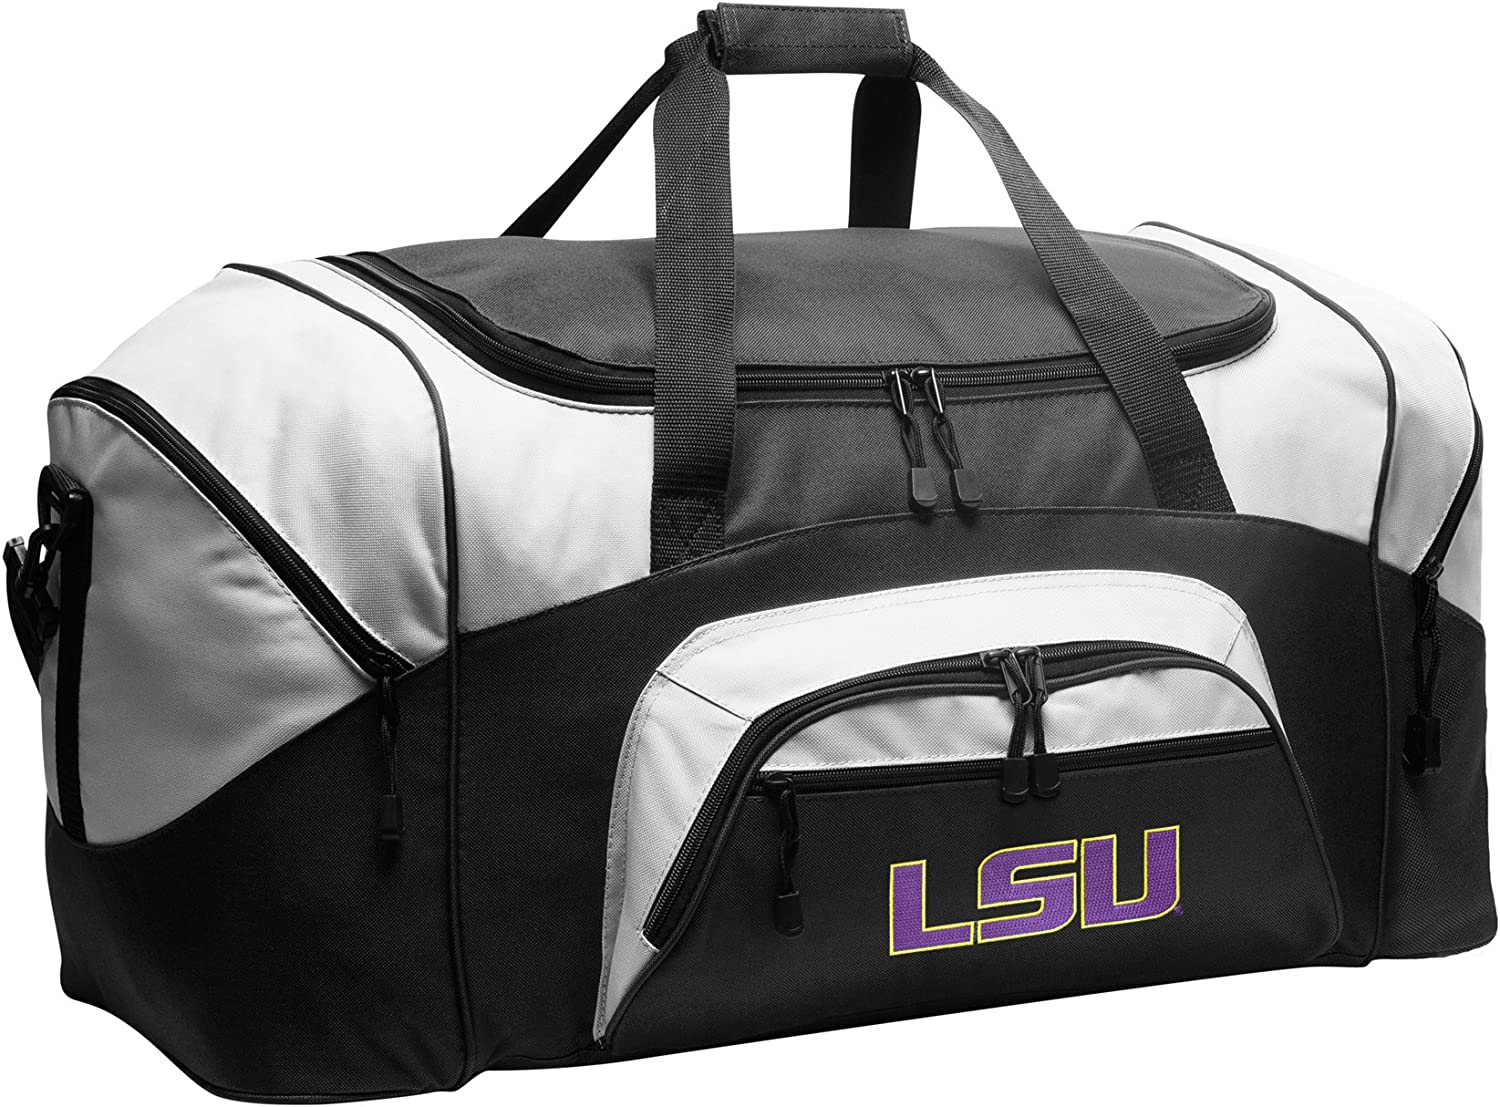 Large LSU Tigers Duffel Bag Suitcase Ma for Max 63% OFF Gym or A New color Men